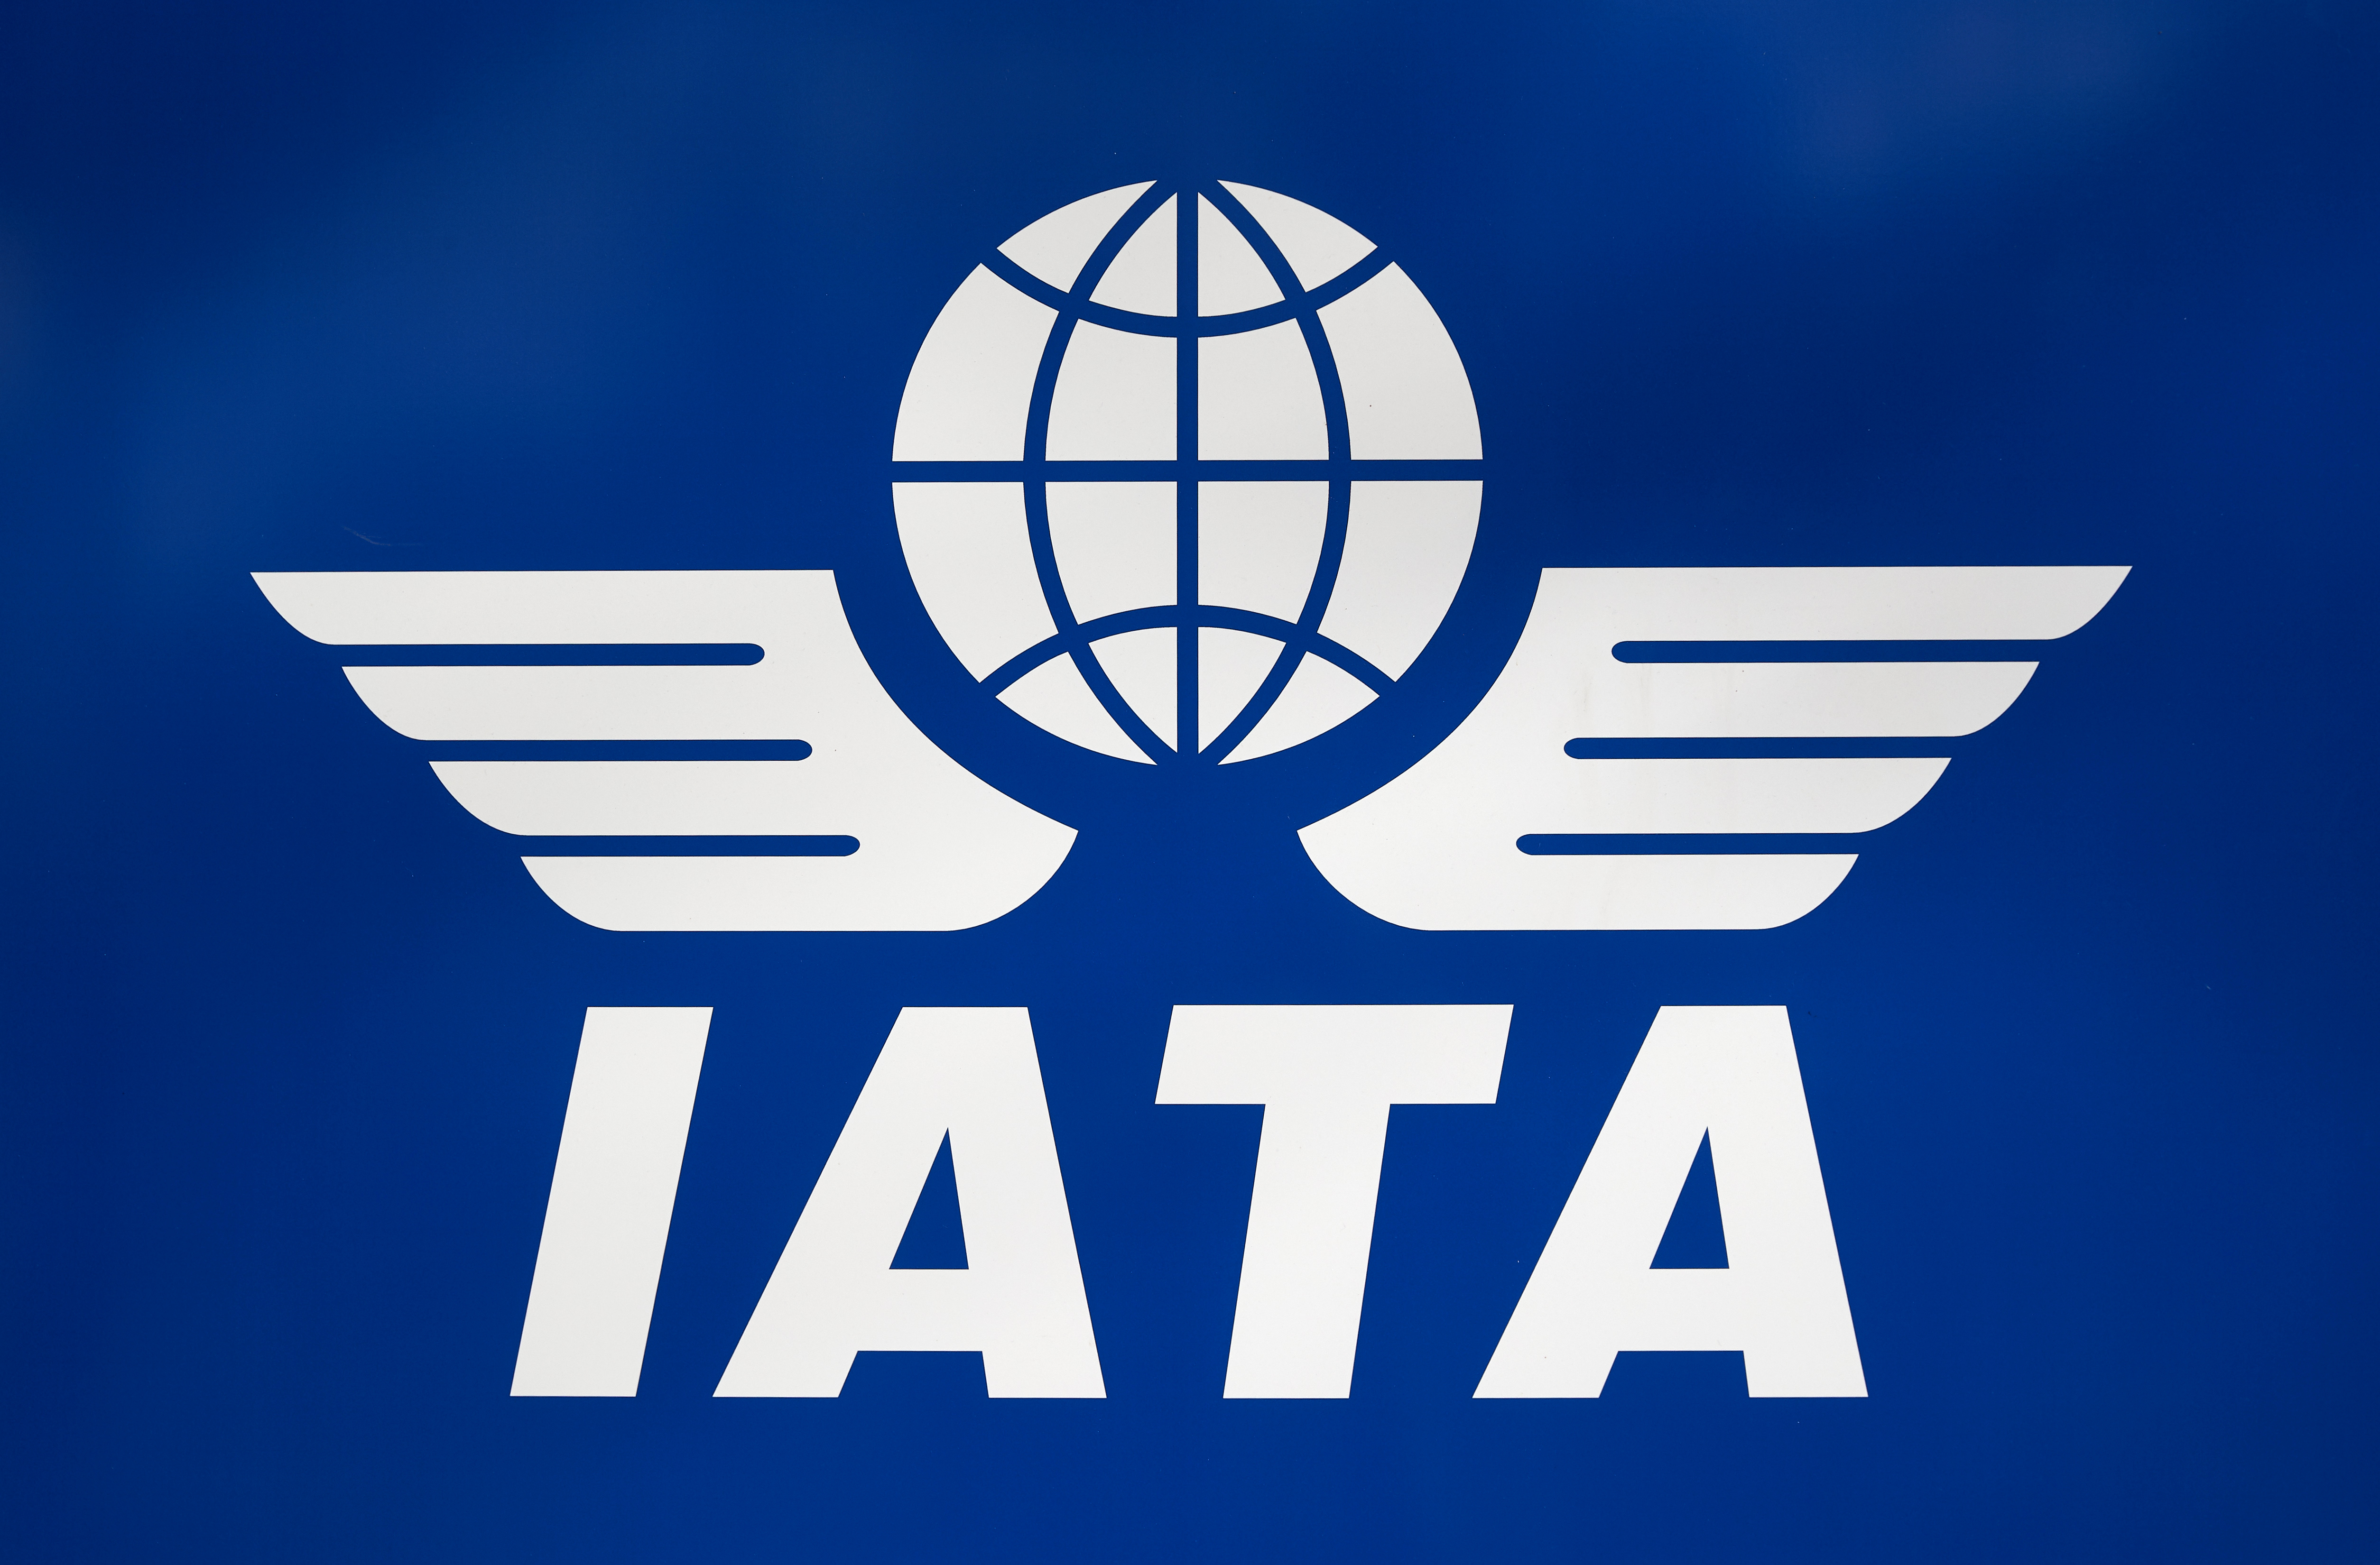 A logo of the International Air Transport Association (IATA) is pictured before and an interview with Reuters on the consequences of the outbreak of the coronavirus disease (COVID-19) in Geneva, Switzerland, March 13, 2020. REUTERS/Denis Balibouse